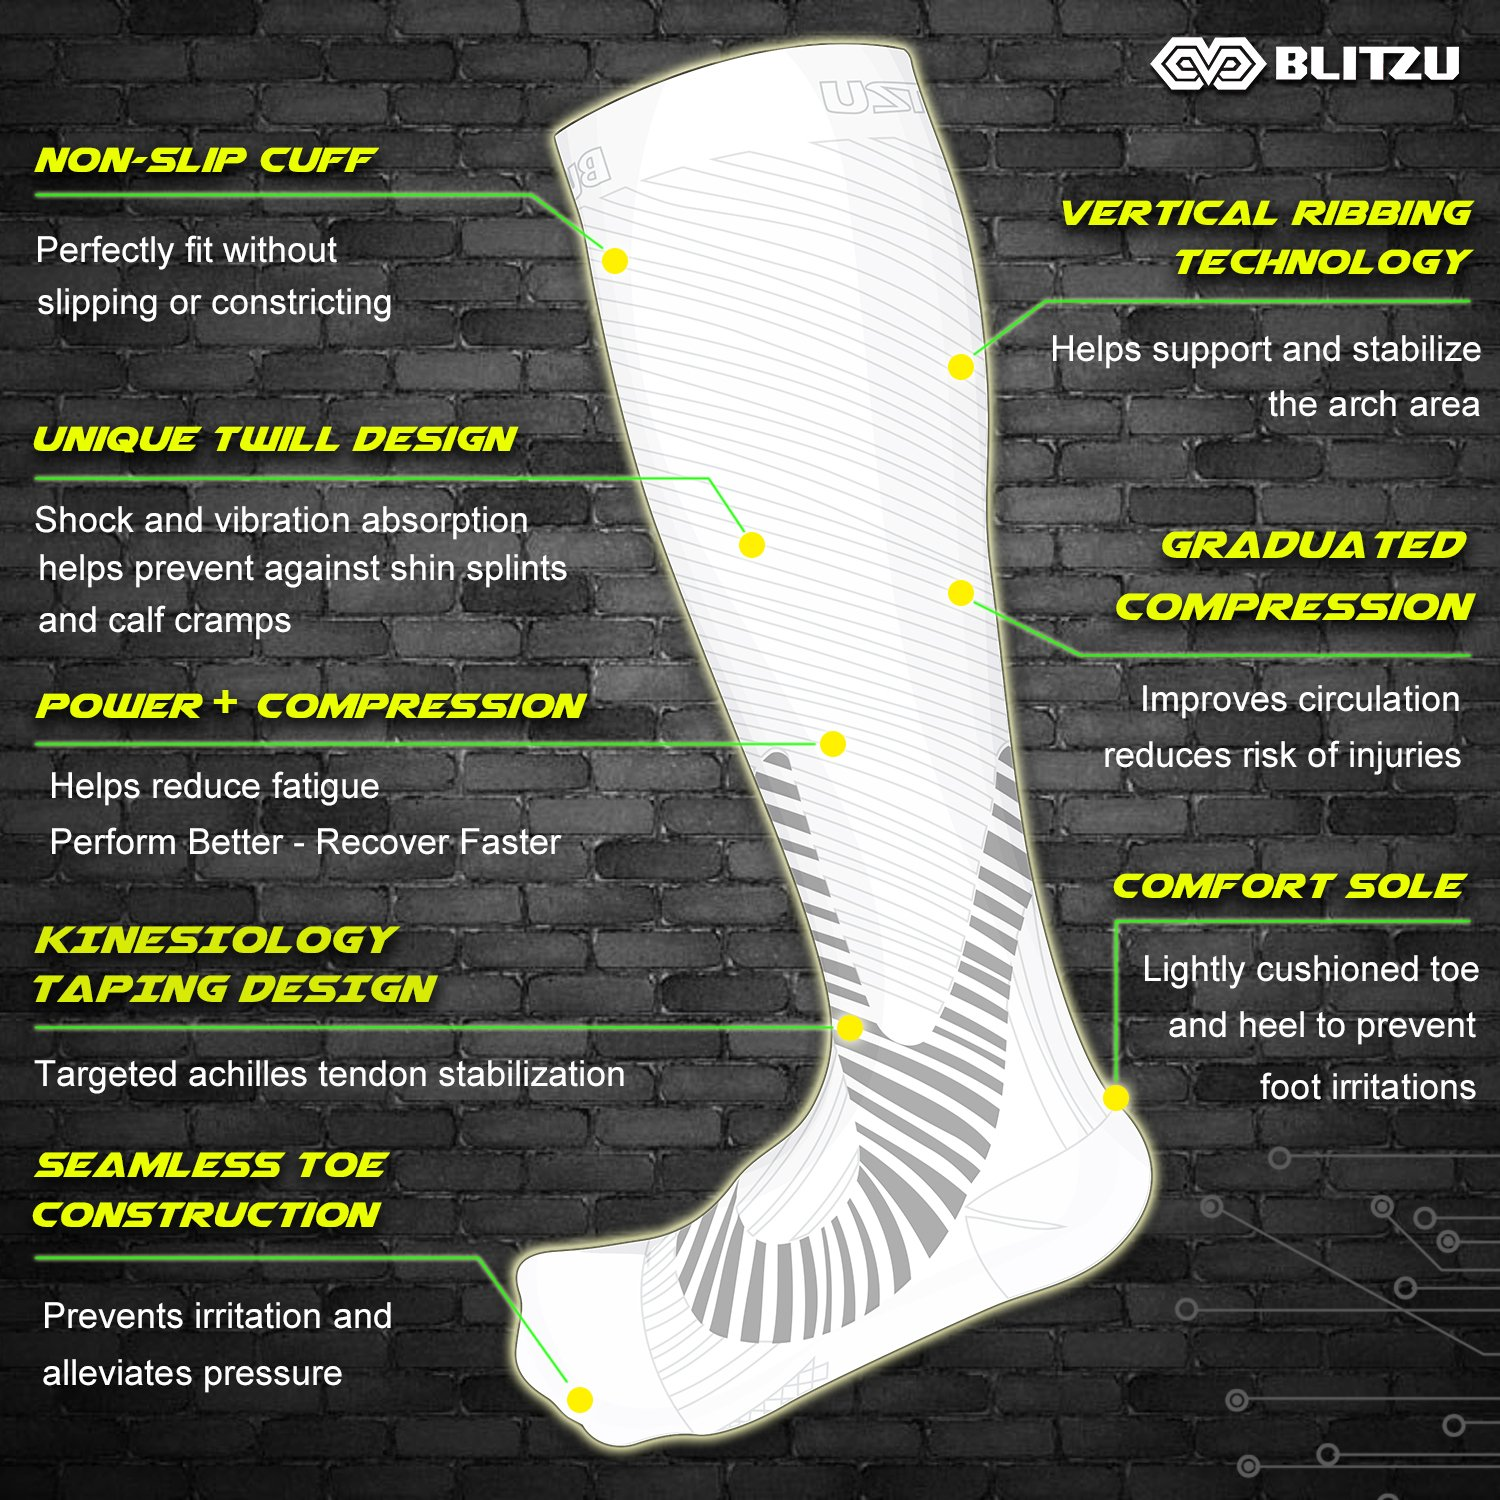 Blitzu Compression Socks 20-30mmHg for Men & Women BEST Recovery Performance Stockings for Running, Medical, Athletic, Edema, Diabetic, Varicose Veins, Travel, Pregnancy, Relief Shin Splint White L/XL by BLITZU (Image #4)